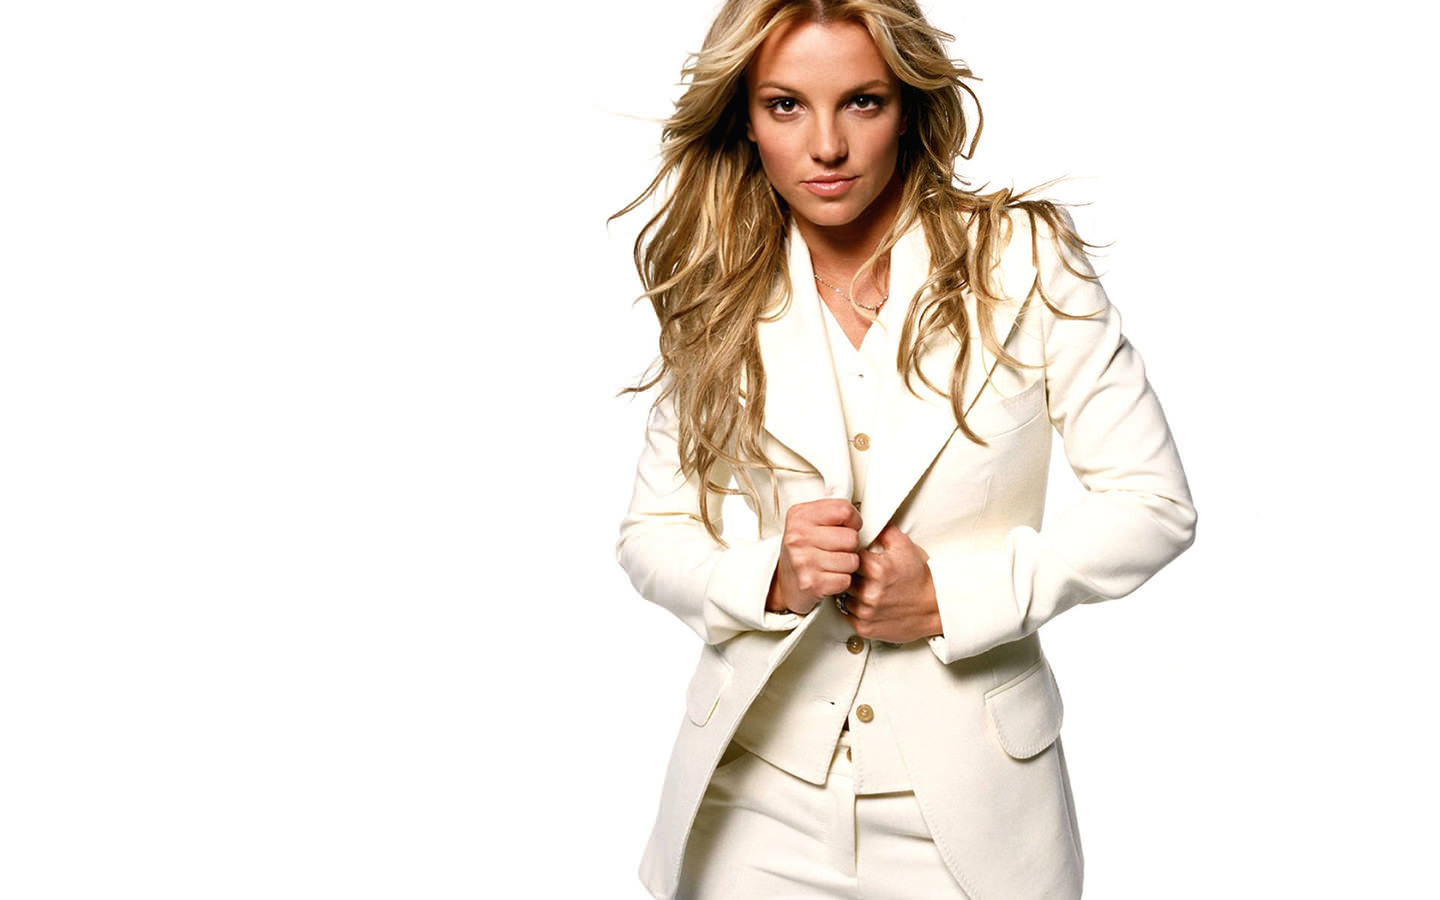 Britney Spears Hd Wallpaper 1440x900